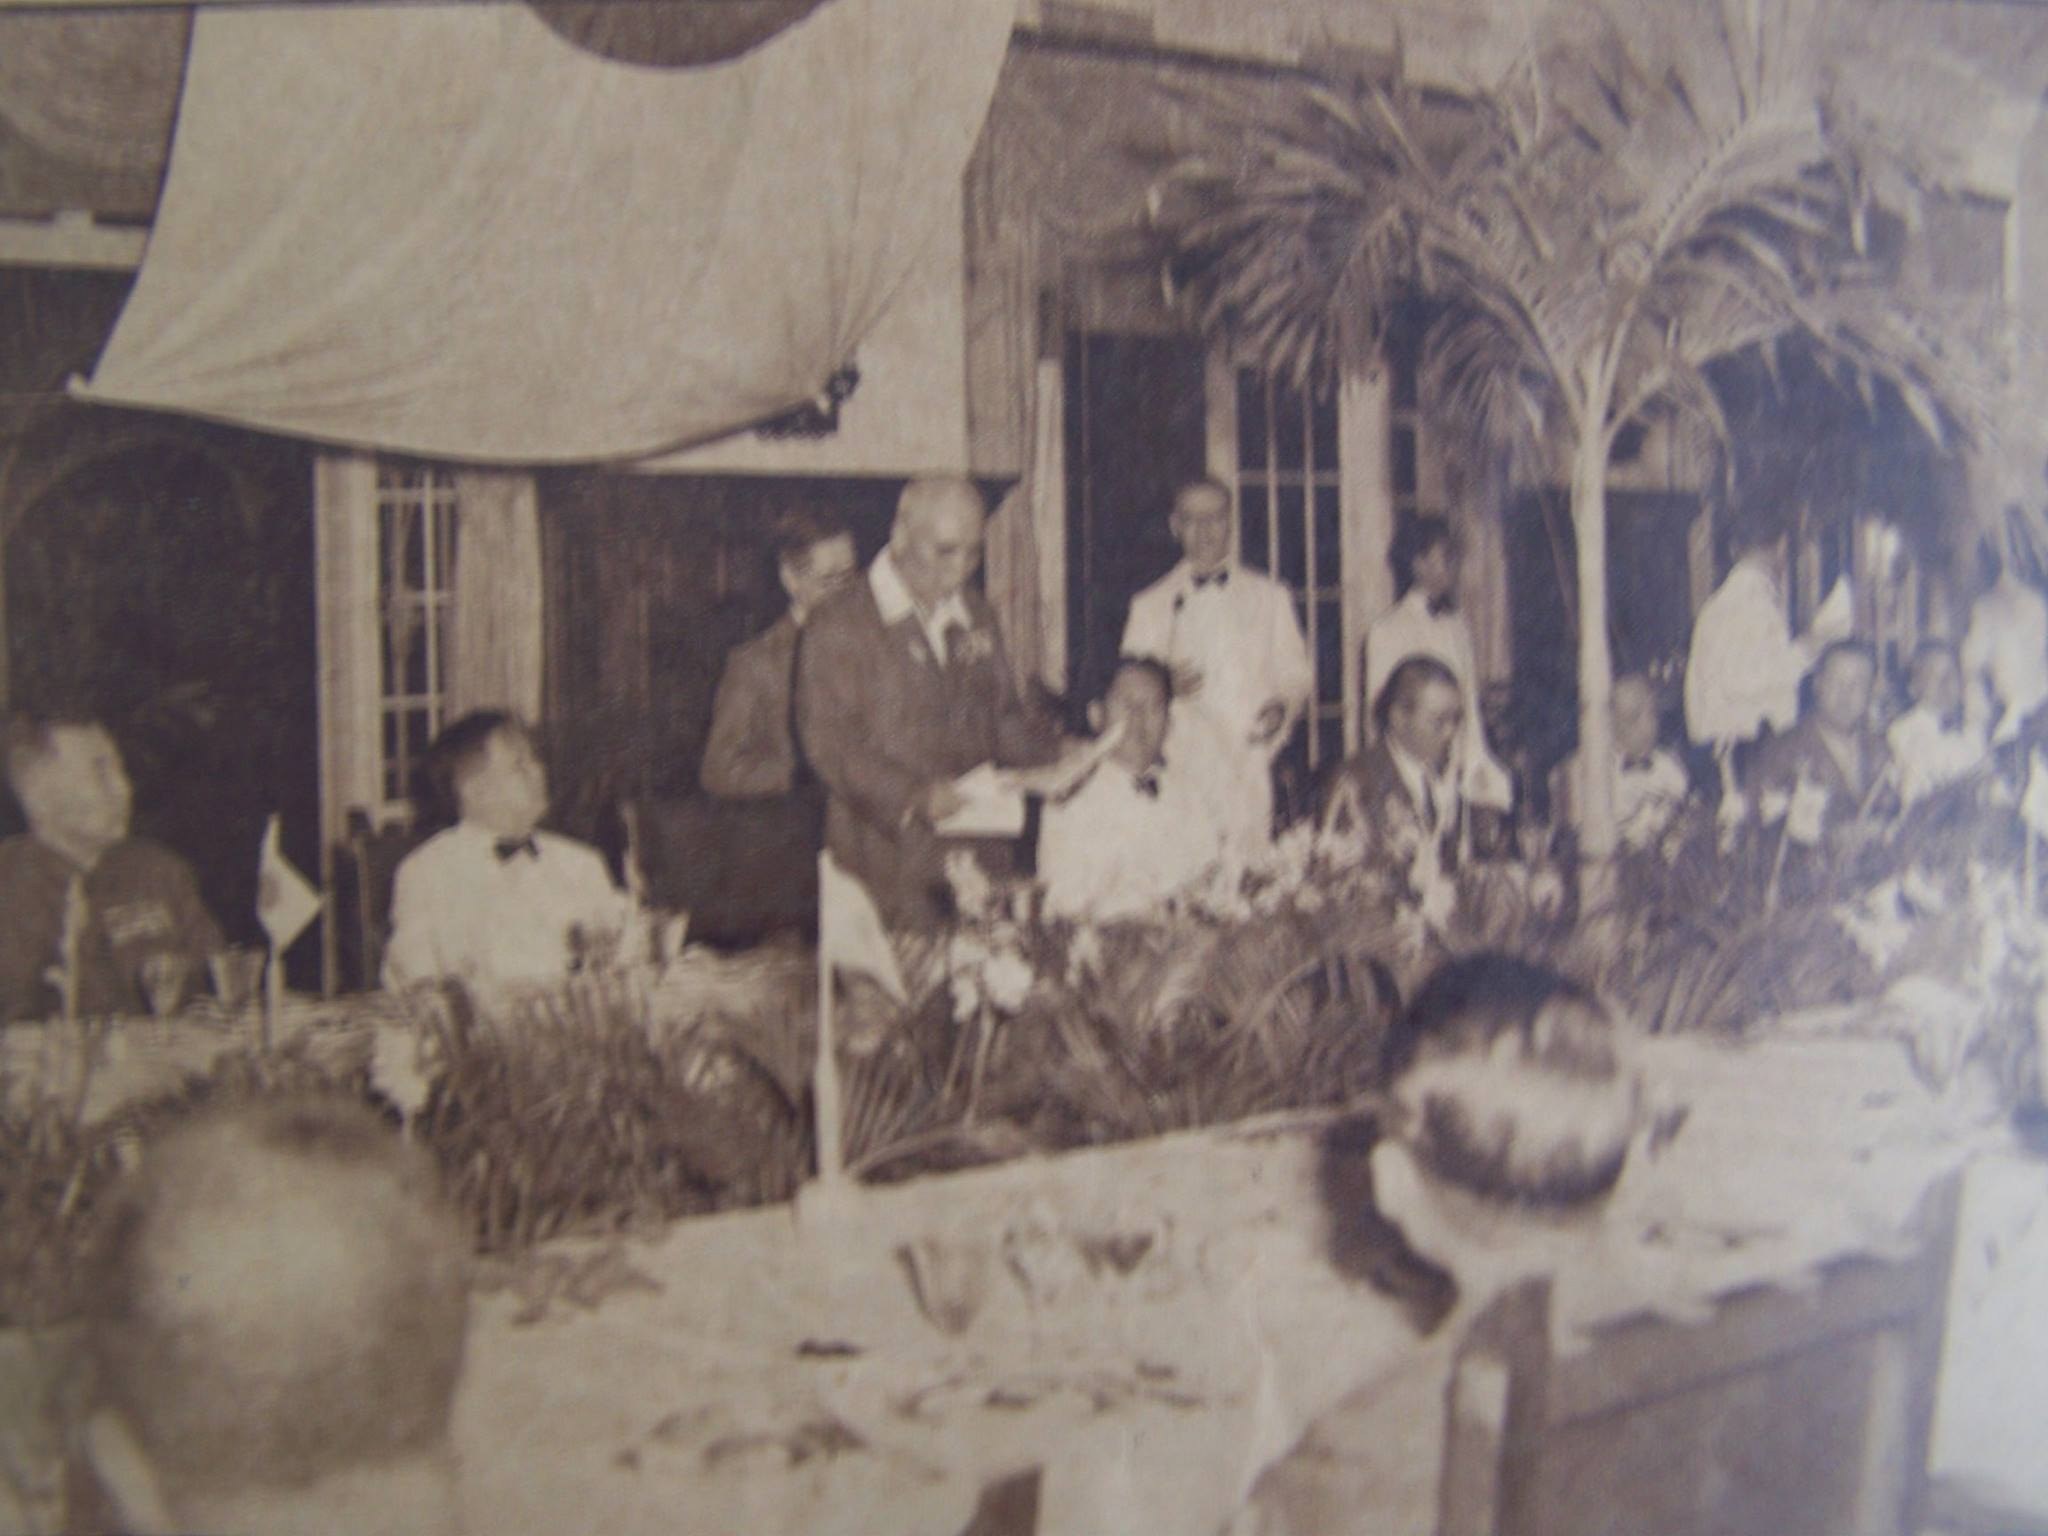 Gen.Homma celebrates Hirohito's birthday at Manila Hotel-1942